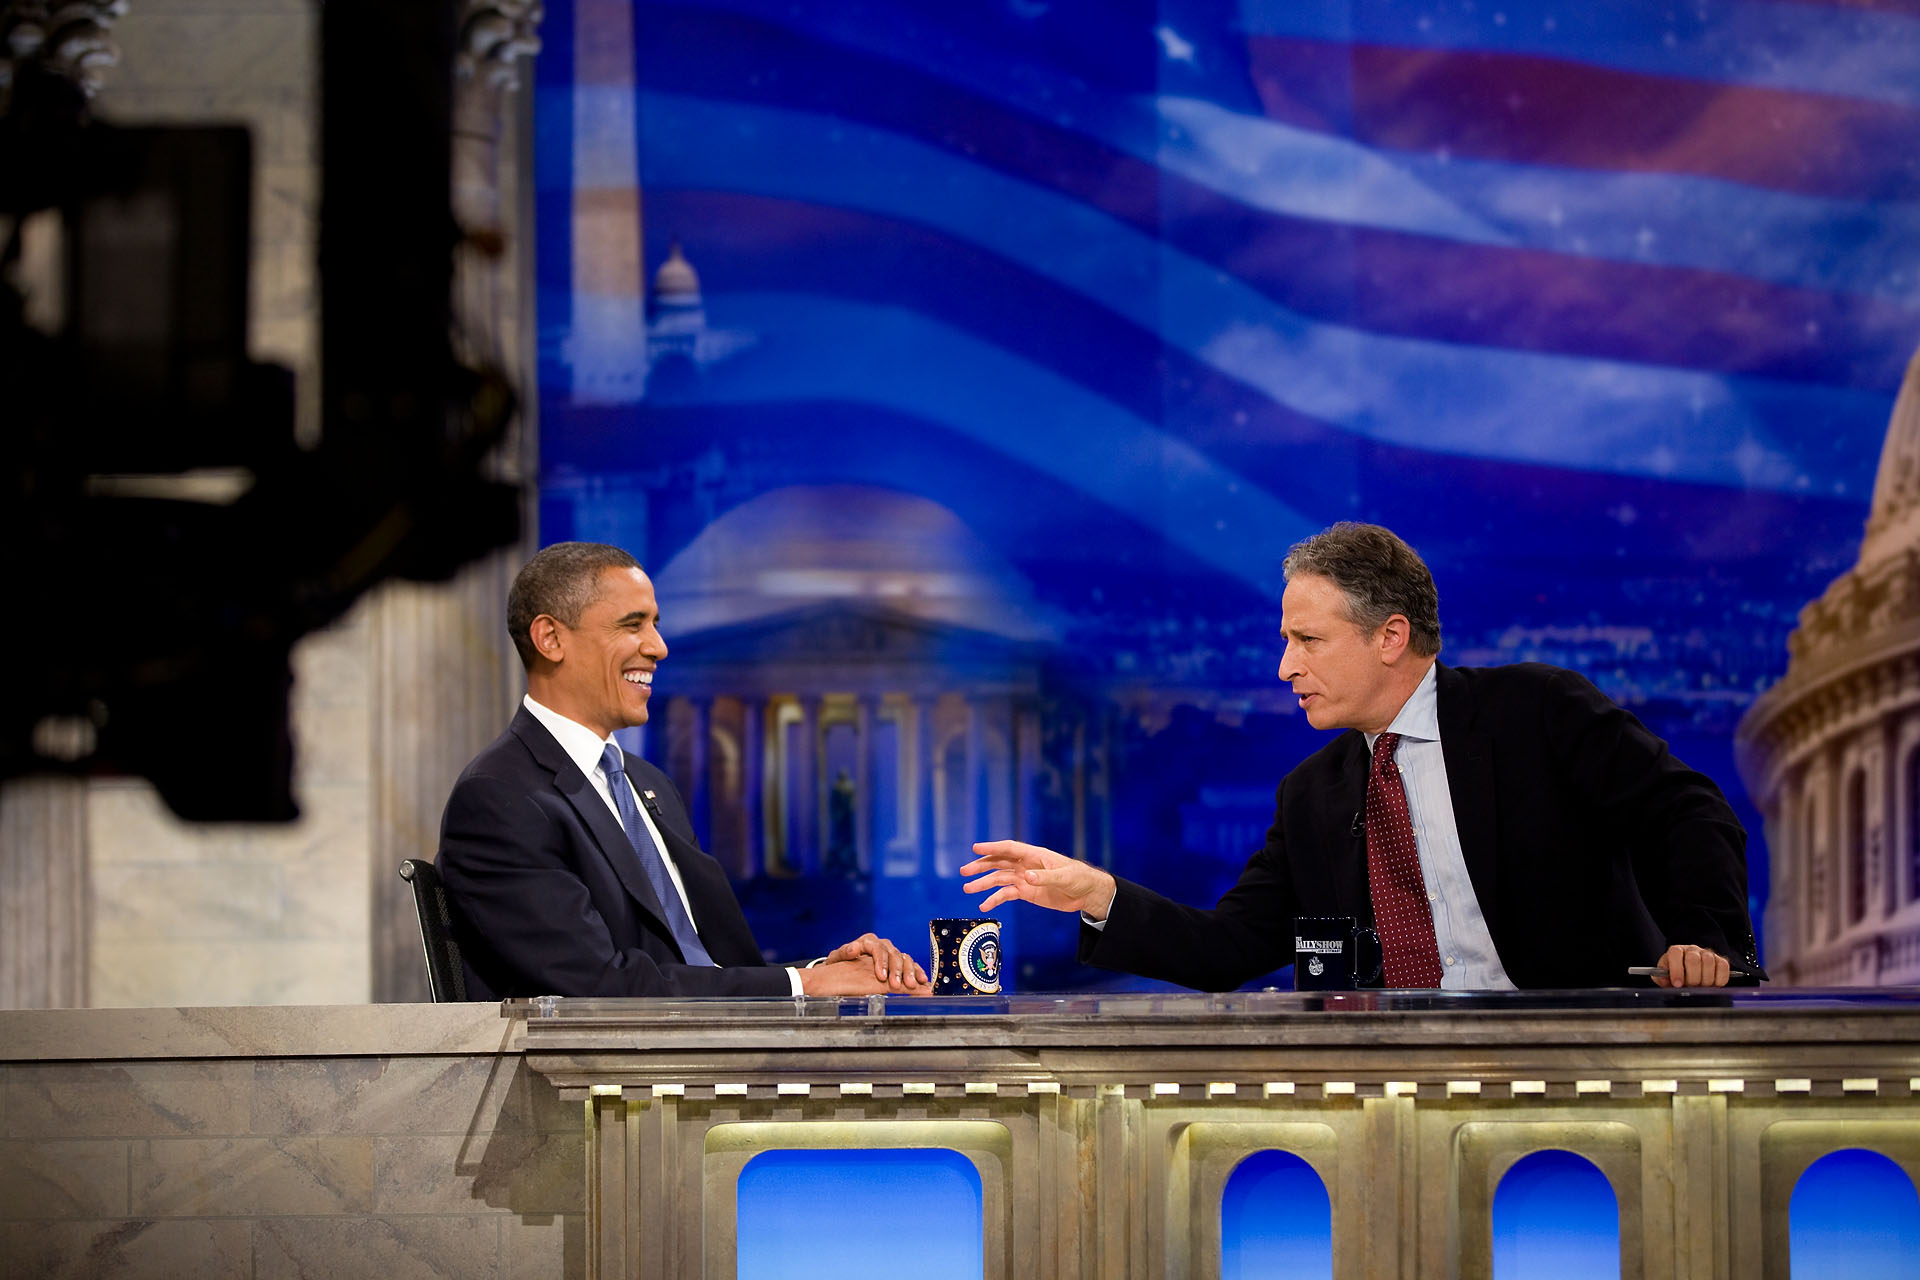 President Barack Obama Tapes an Interview for the Daily Show - Close Up